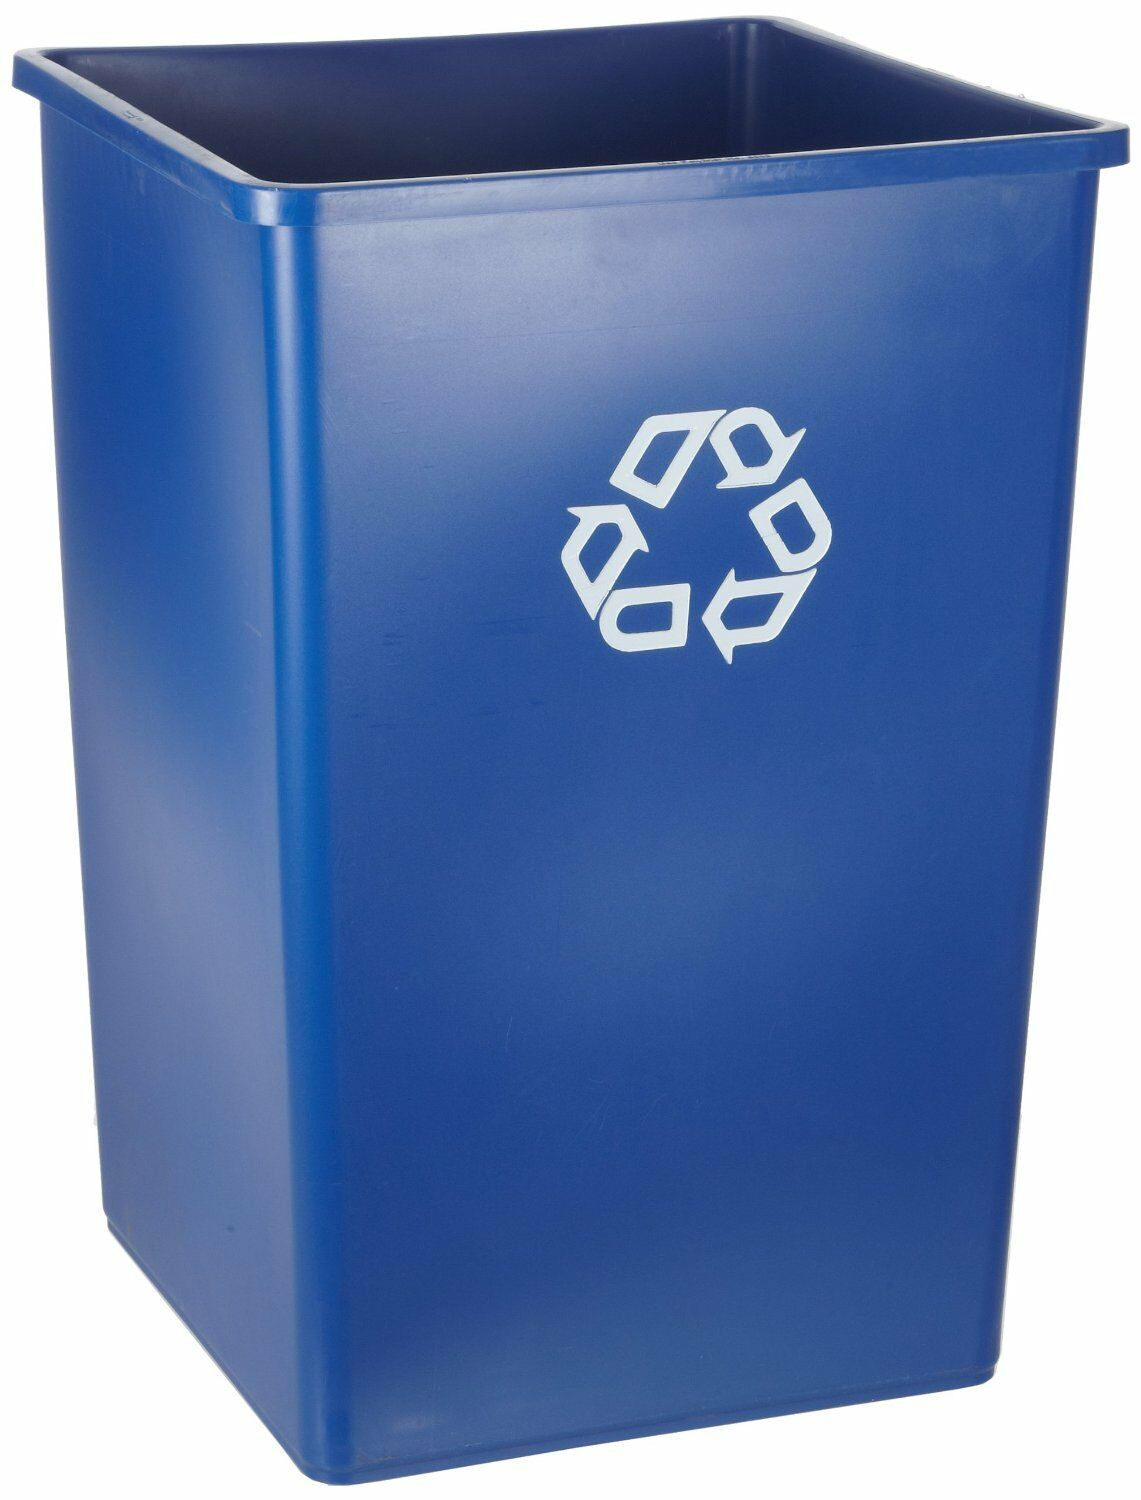 Rubbermaid Commercial Recycle Bin 50 Gallon Blue Fg395973blue | eBay